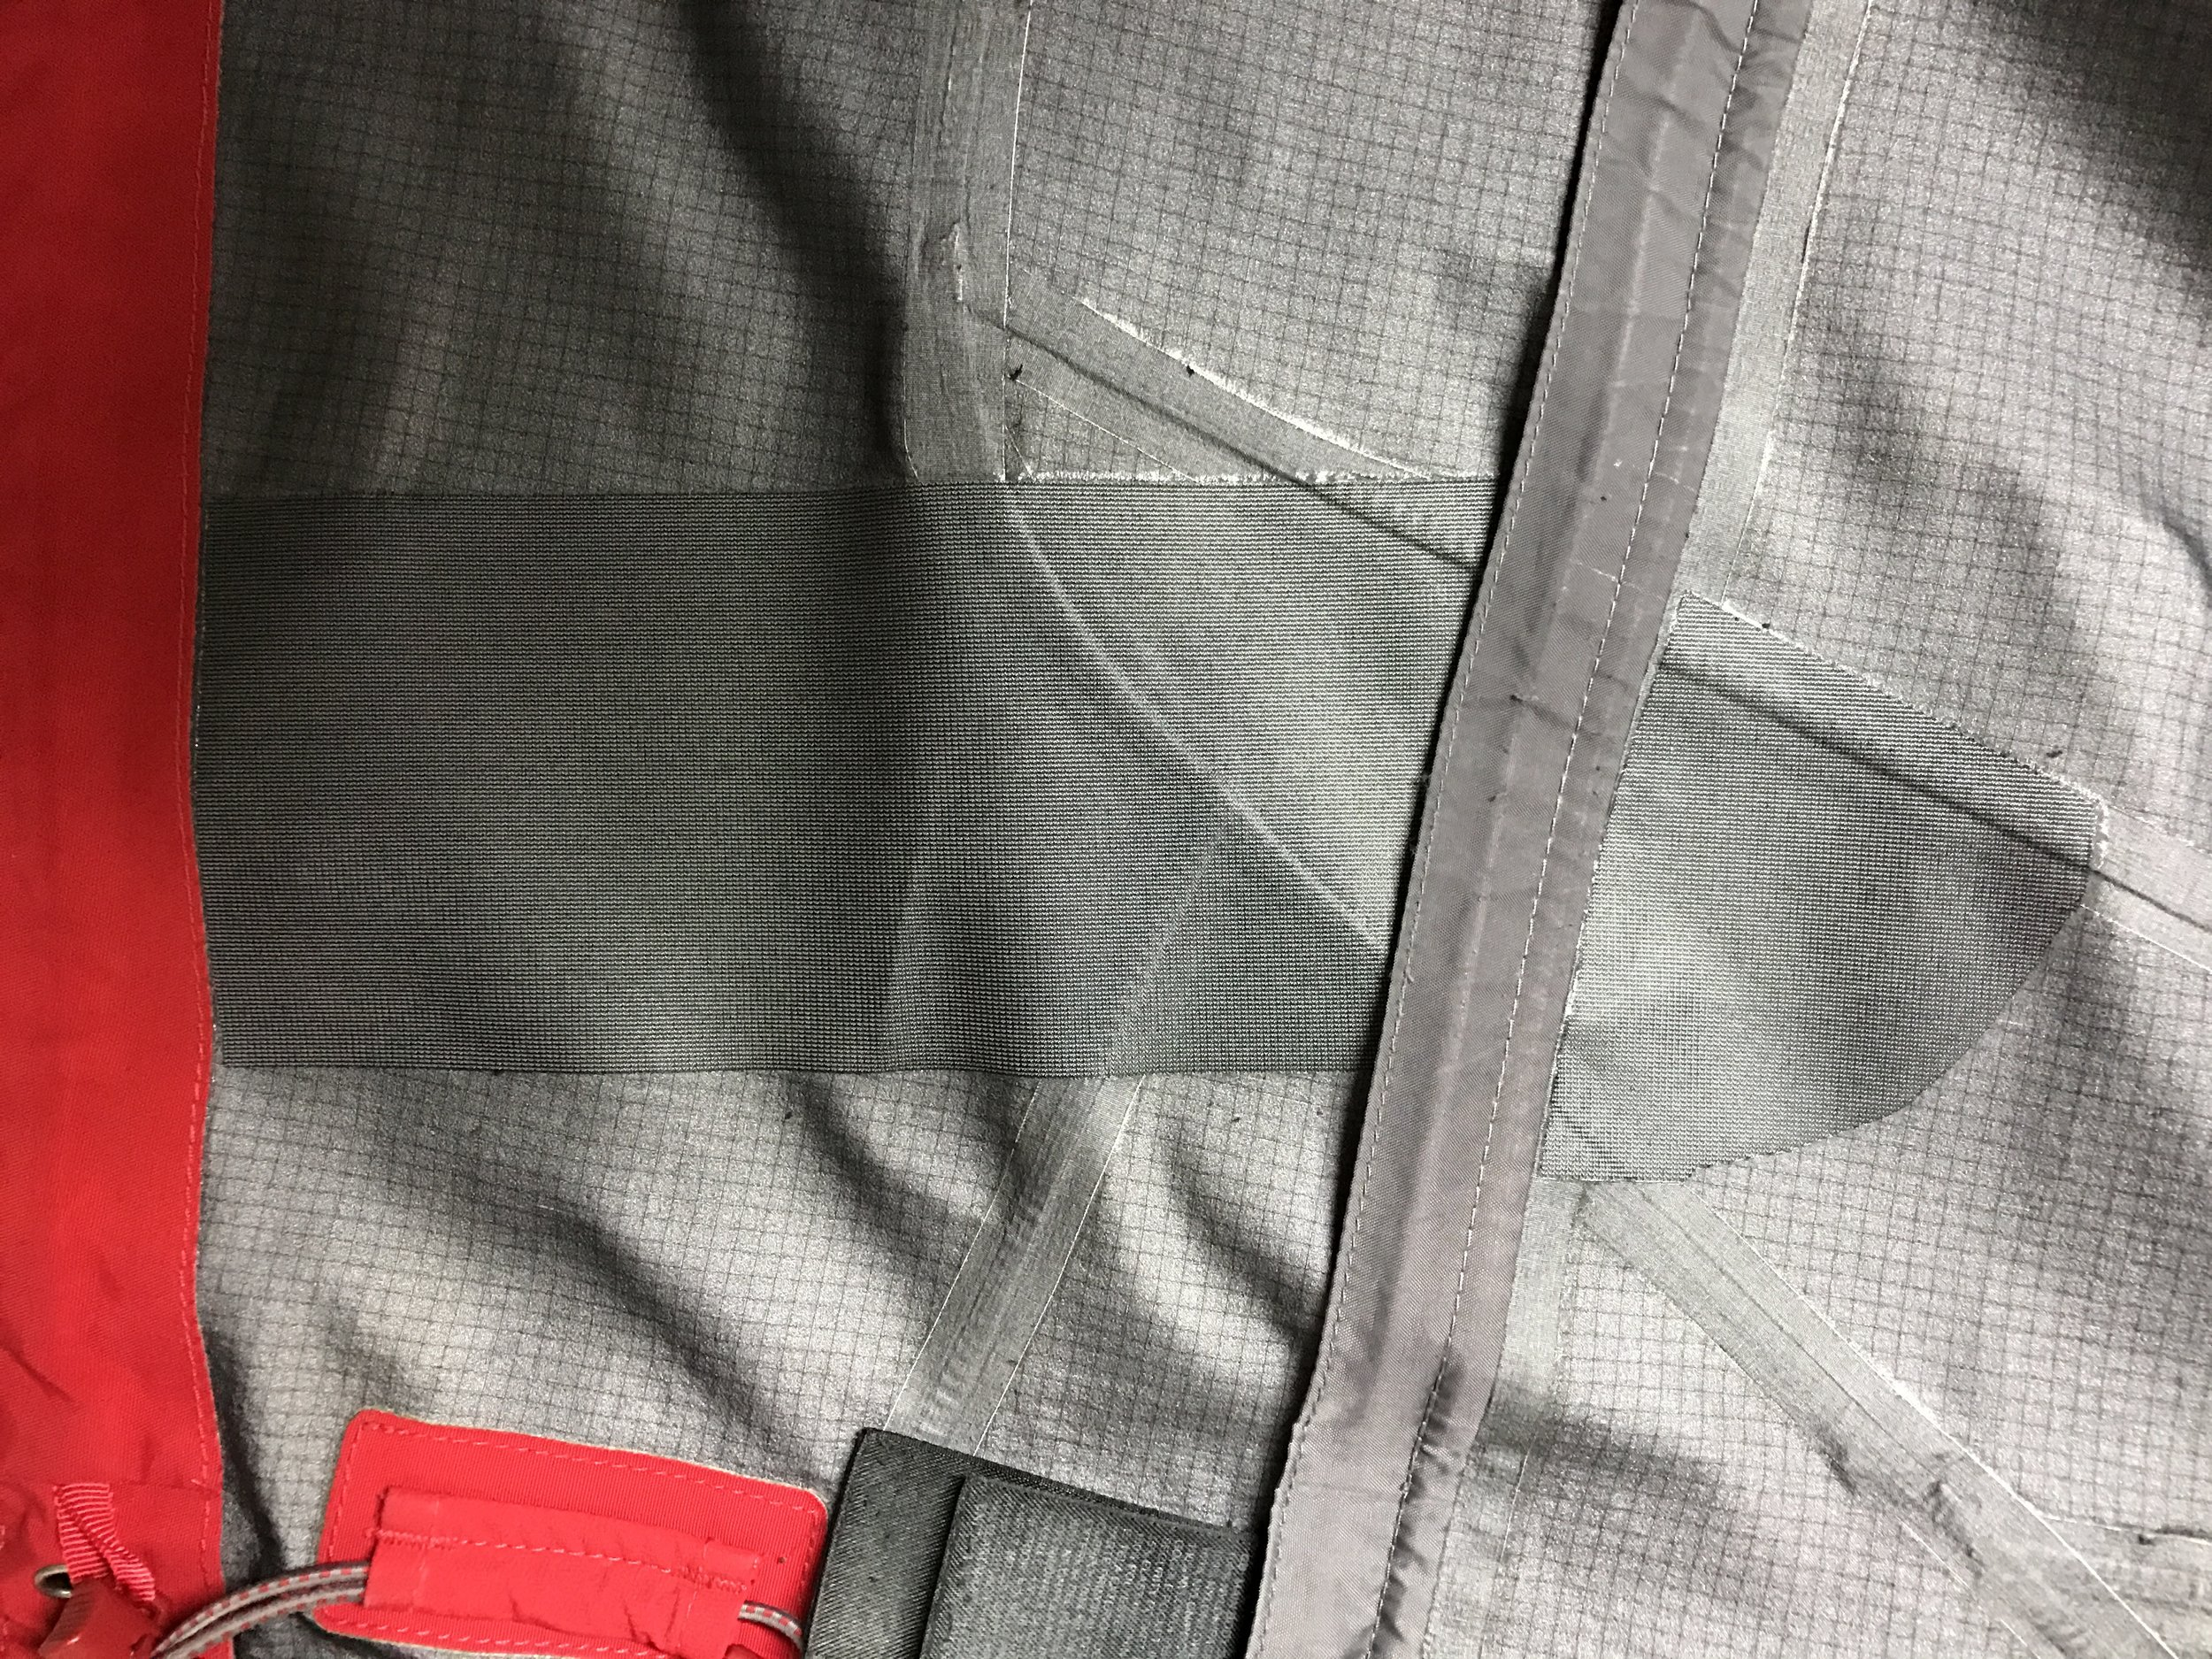 By using a wide seam tape, we are able to protect the waterproof breathable membrane and extend the useful life of the garment.